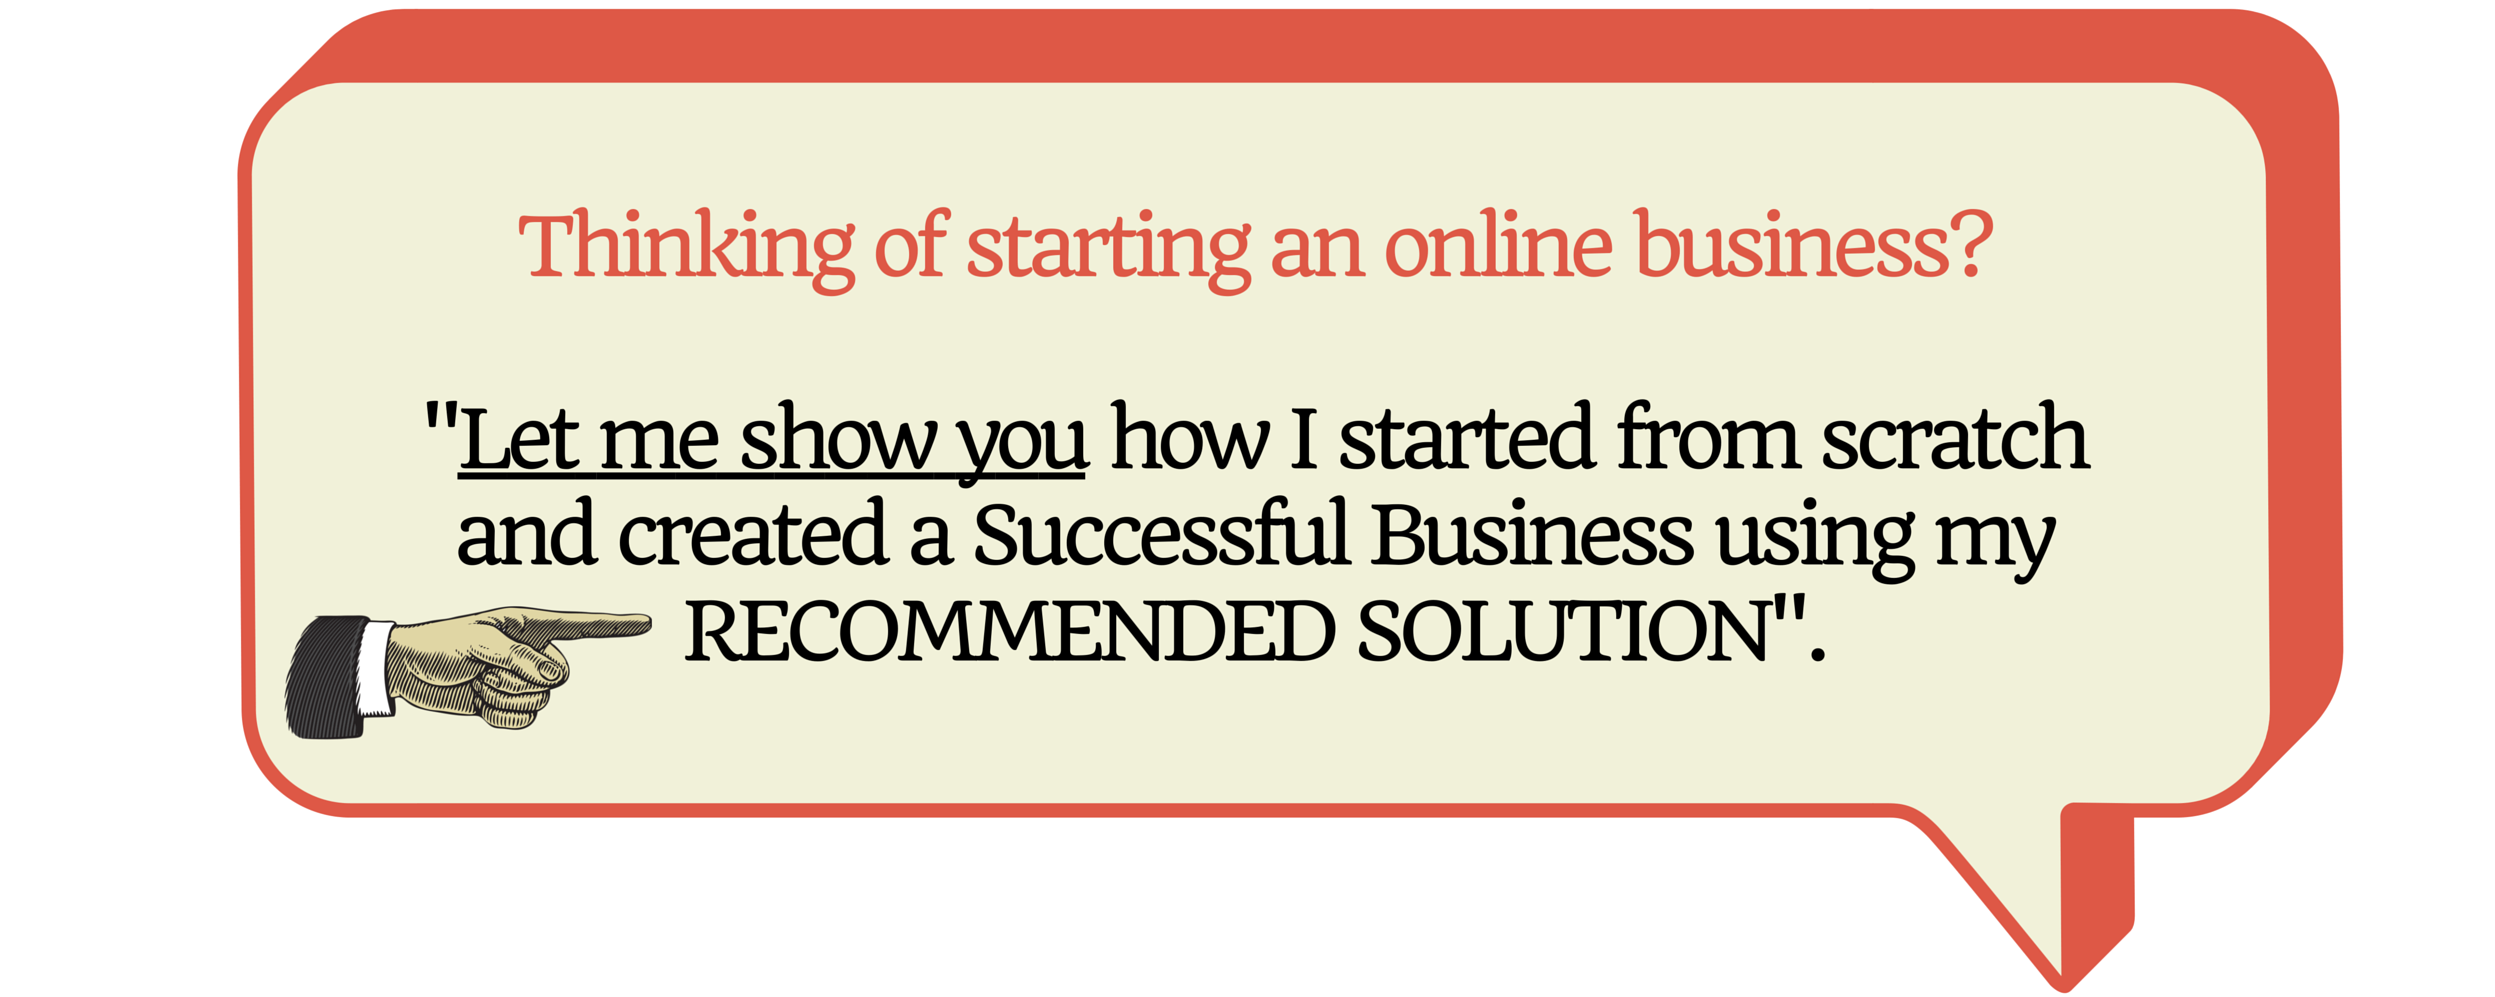 Thinking-of-starting-an-online-business-